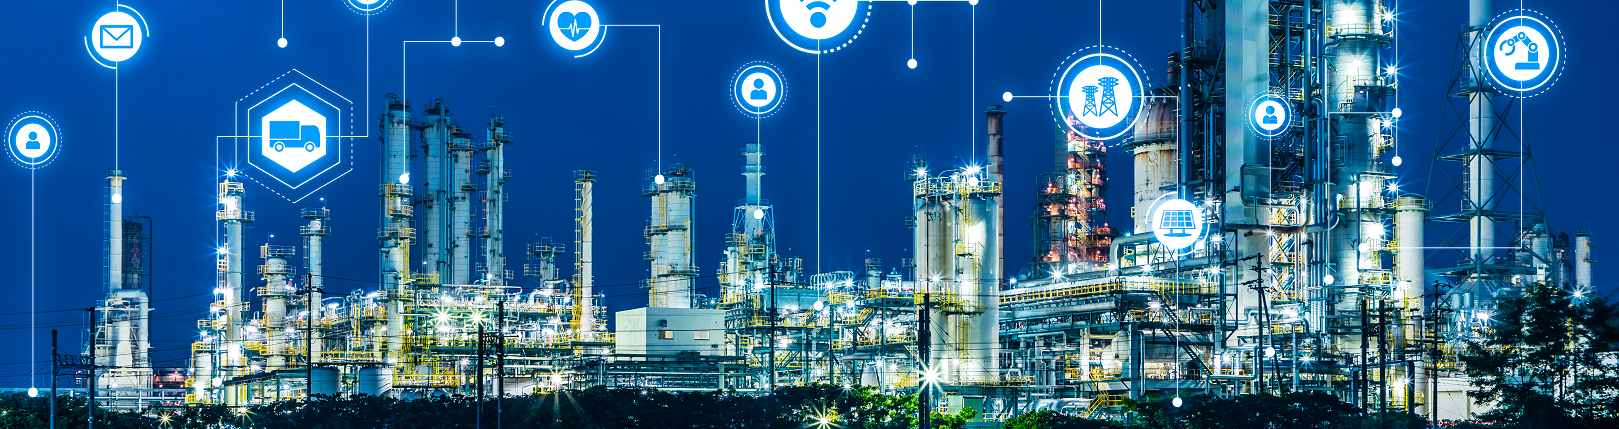 Industrie header